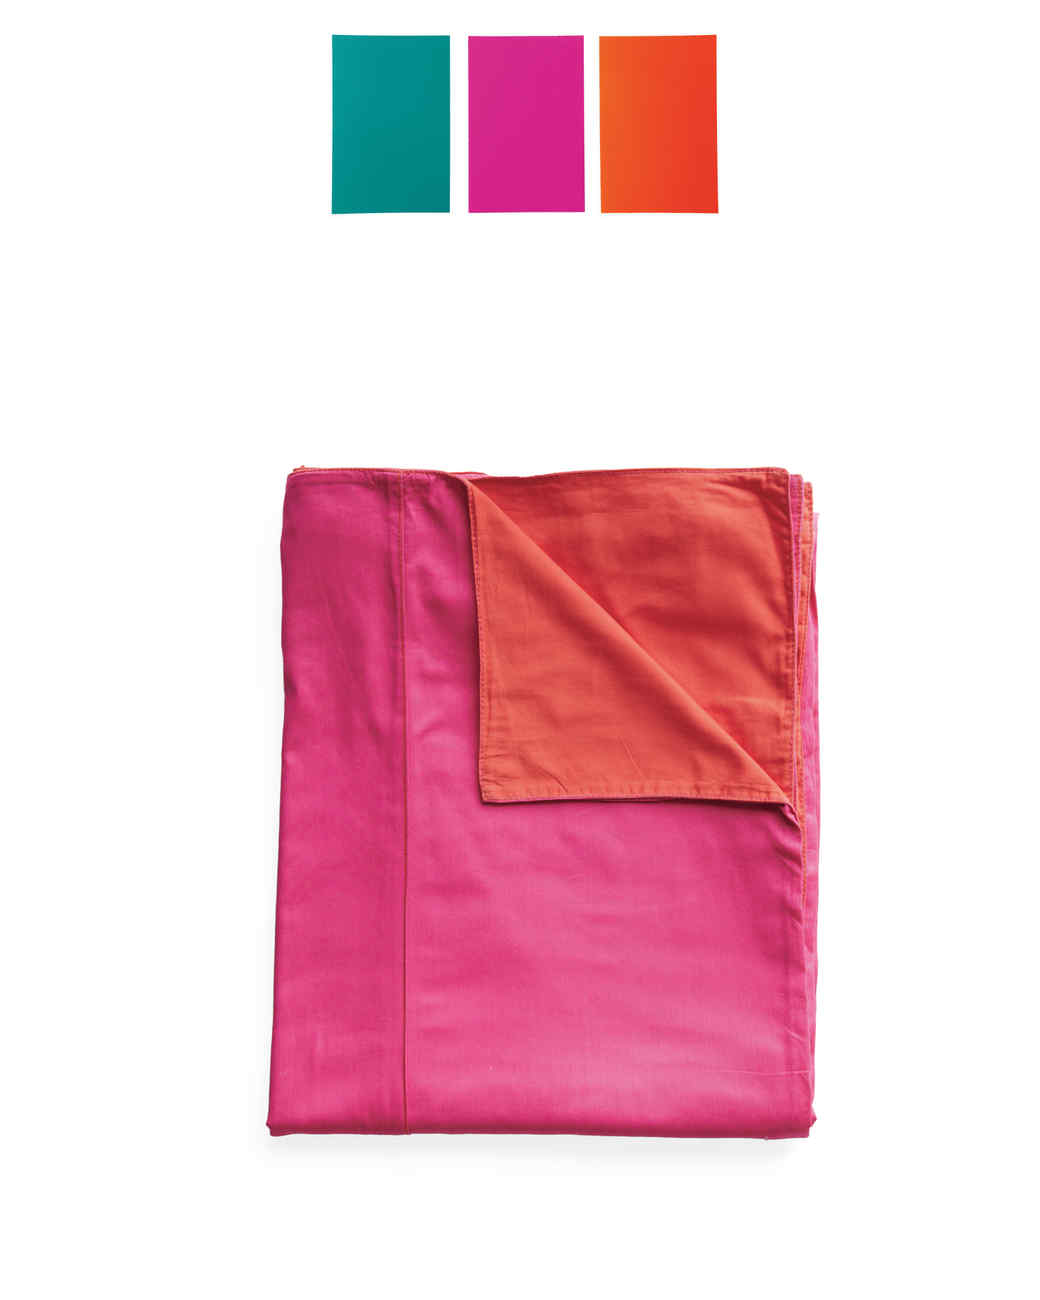 colorblocked-duvet-mld108526.jpg